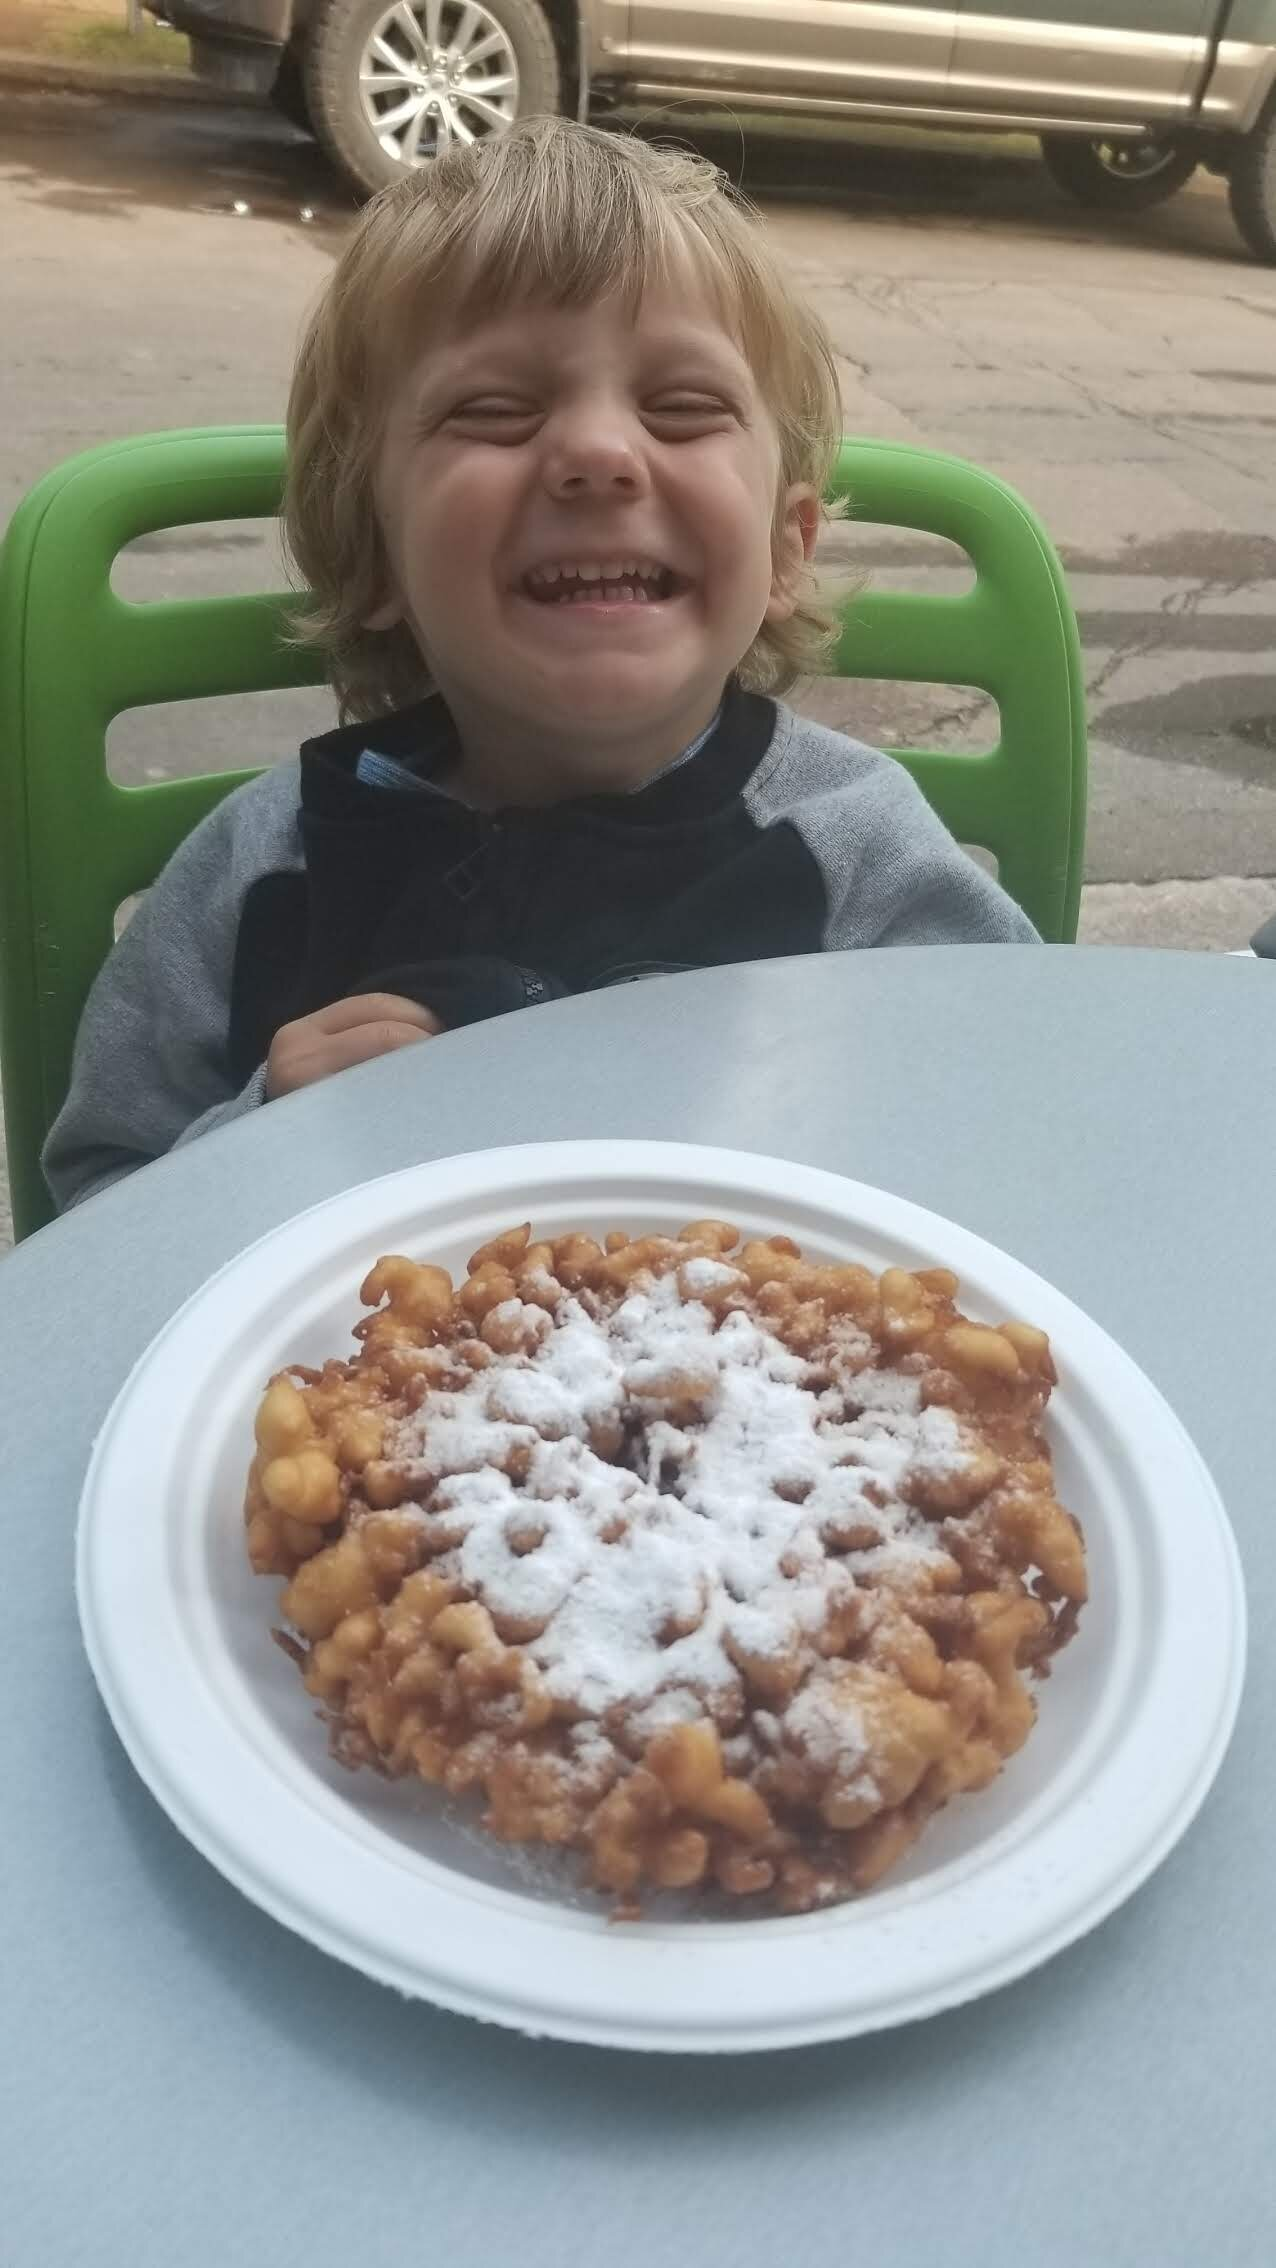 voyage-famille-ipe-fameux-funnel-cake-taters